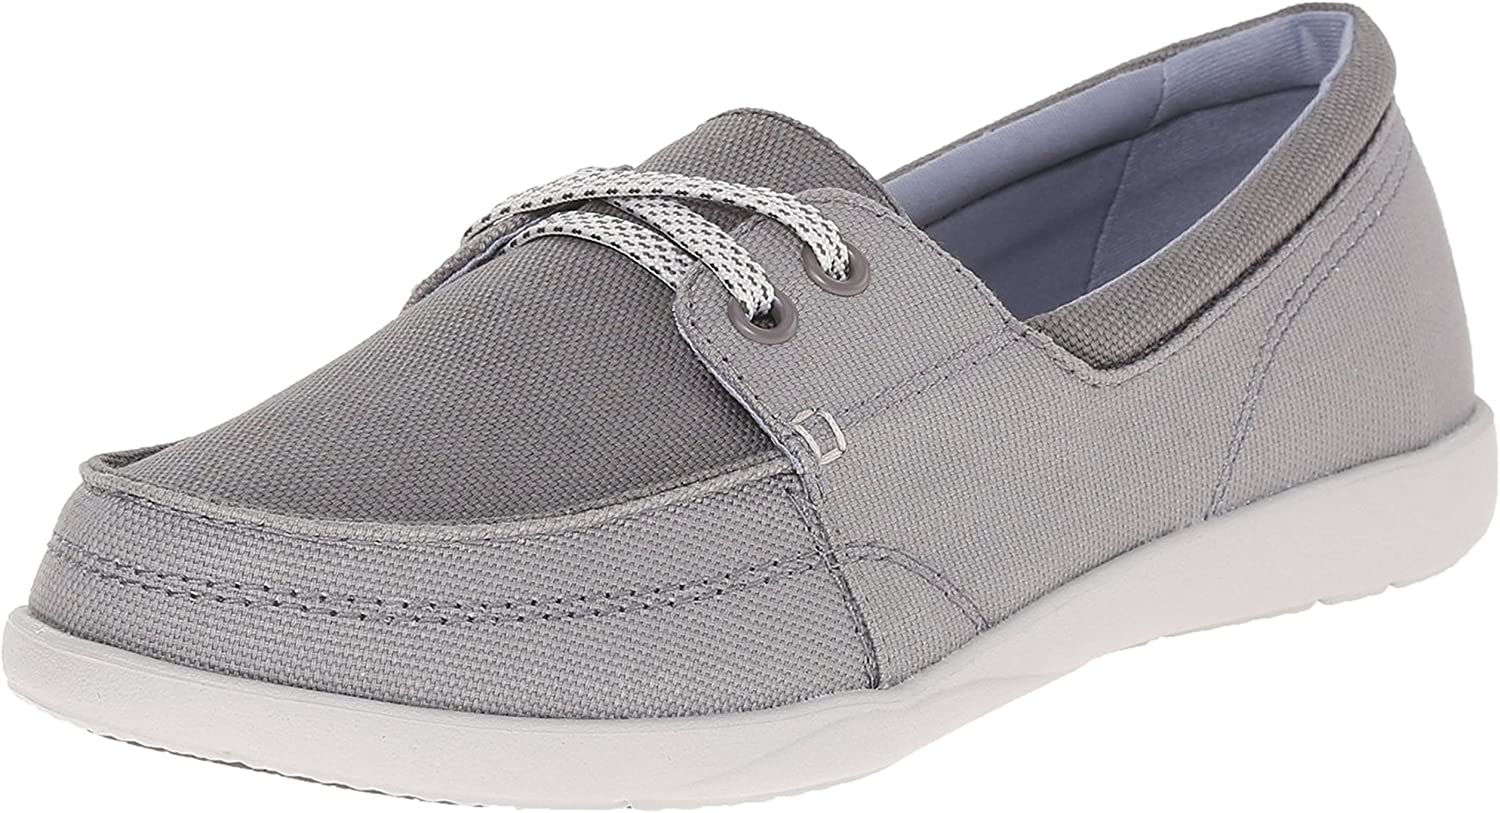 Uerescha Comfortable Women's Canvas Loafer